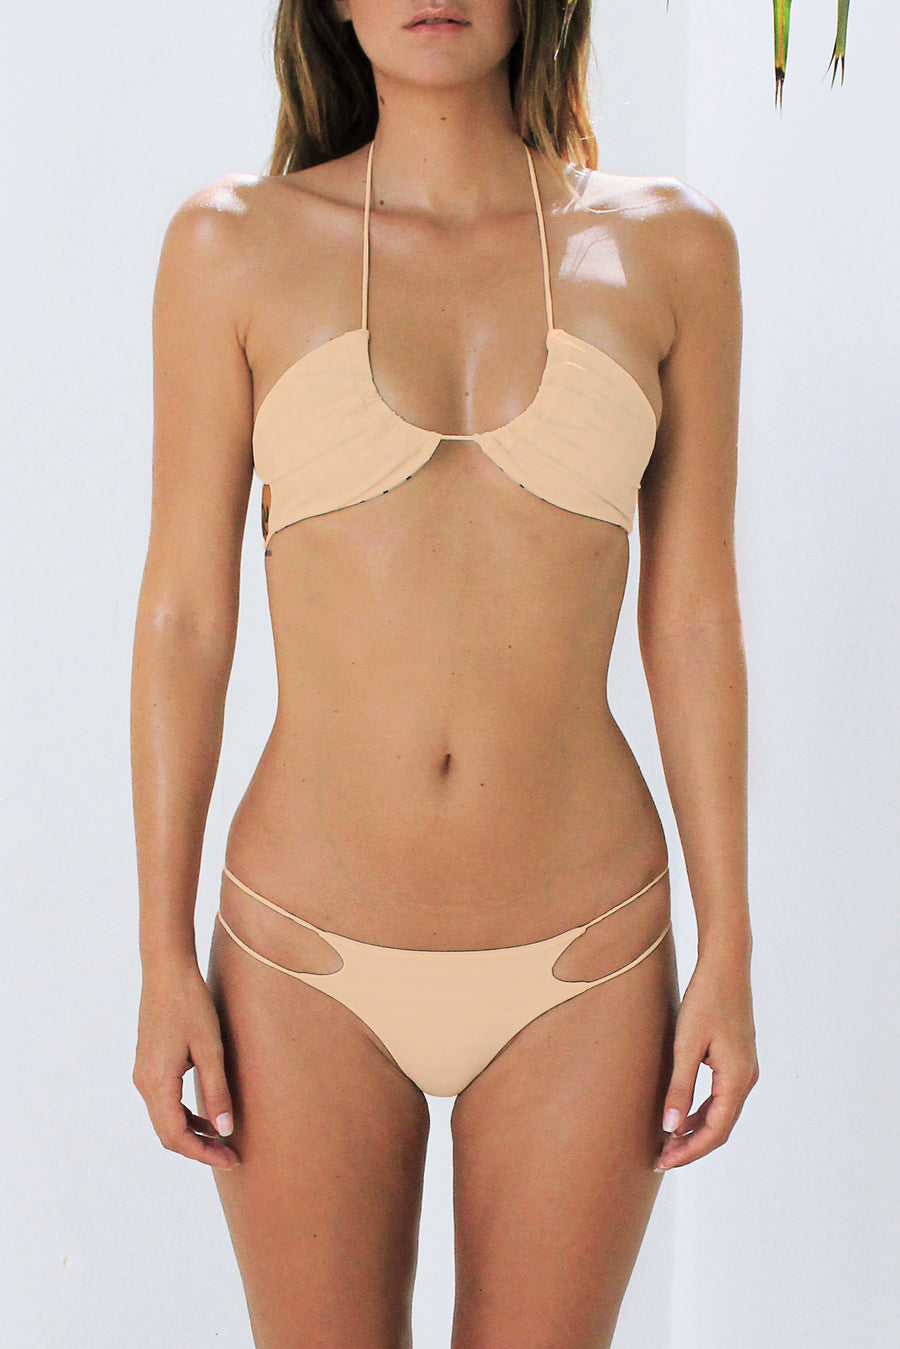 Mustang Sally Top | Terraine - AMARA Tulum - Eco luxe swimwear made with recycled nylon.